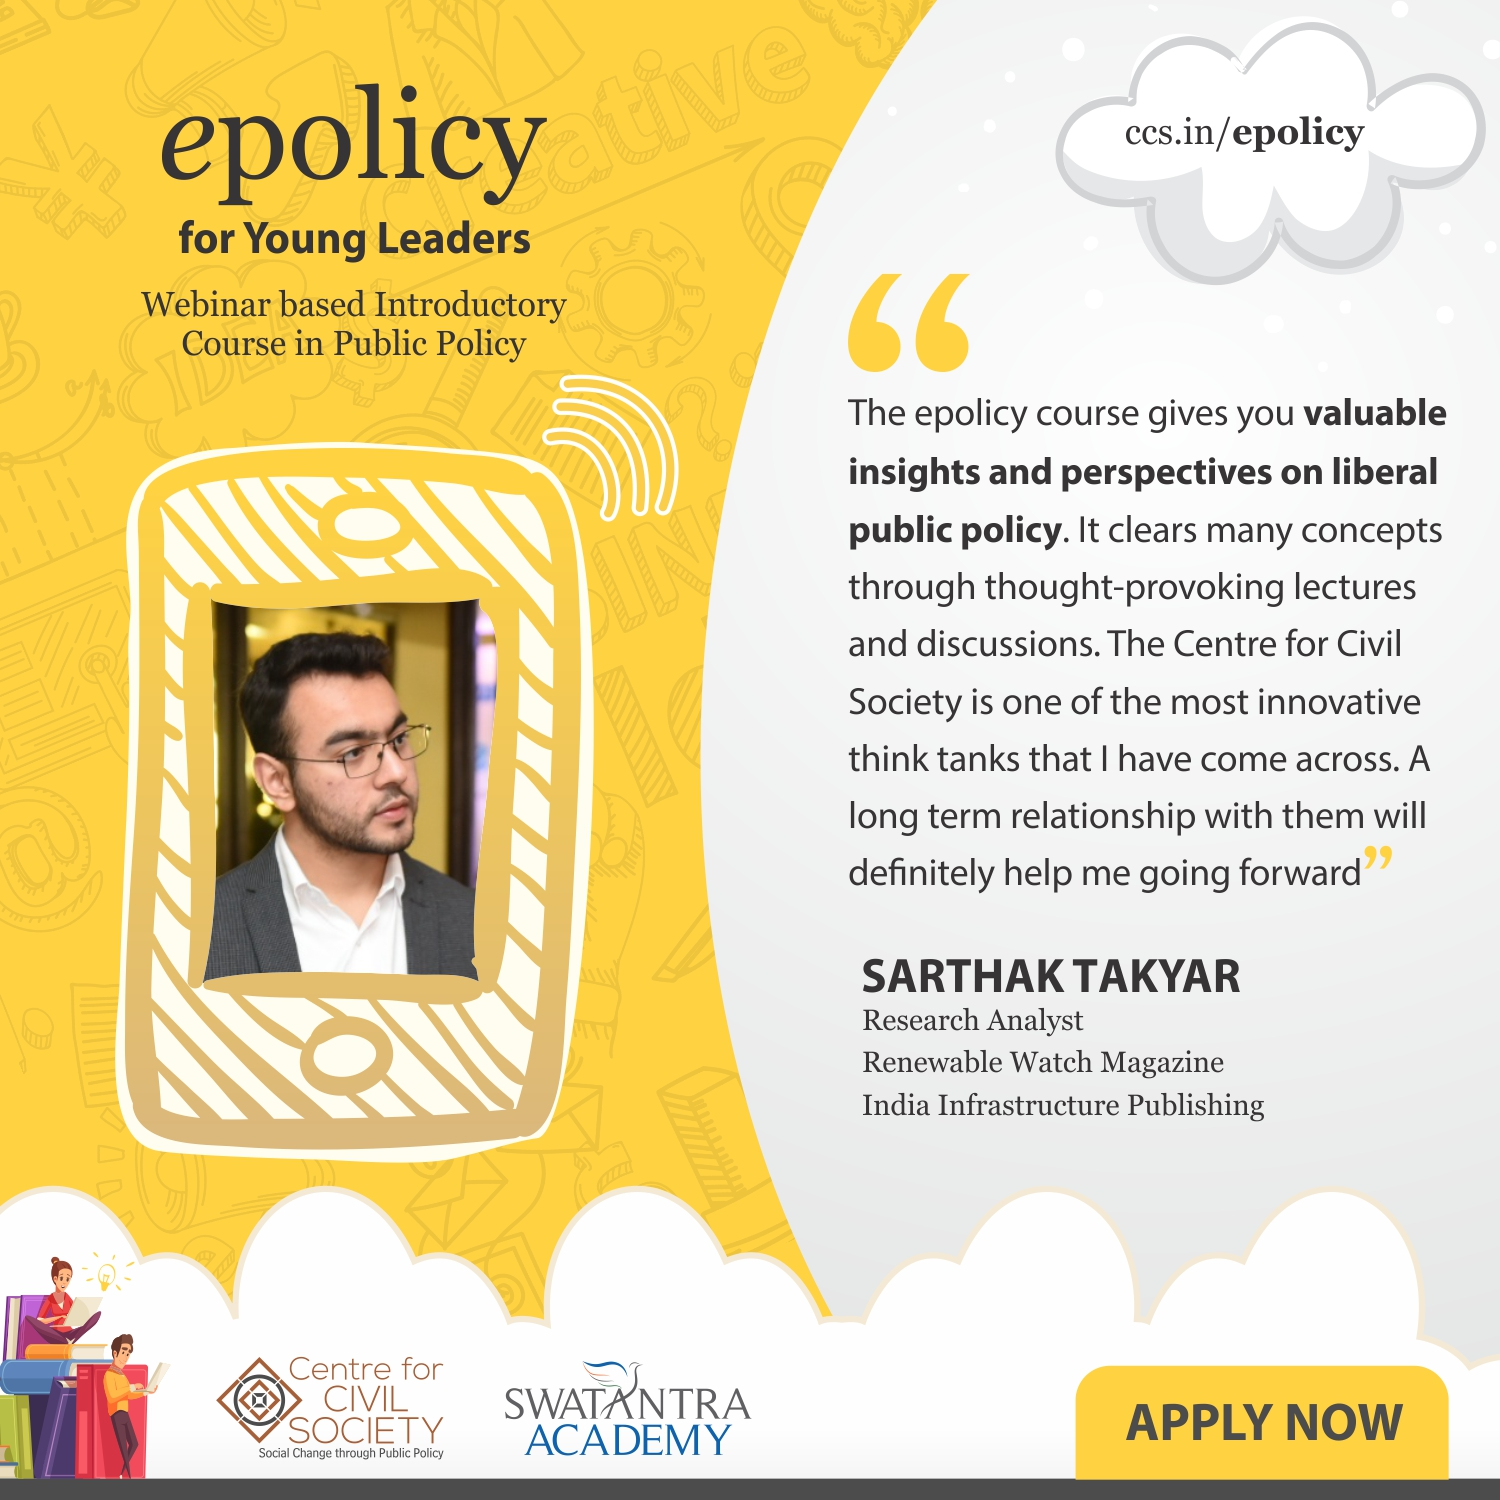 epolicy for Young Leaders